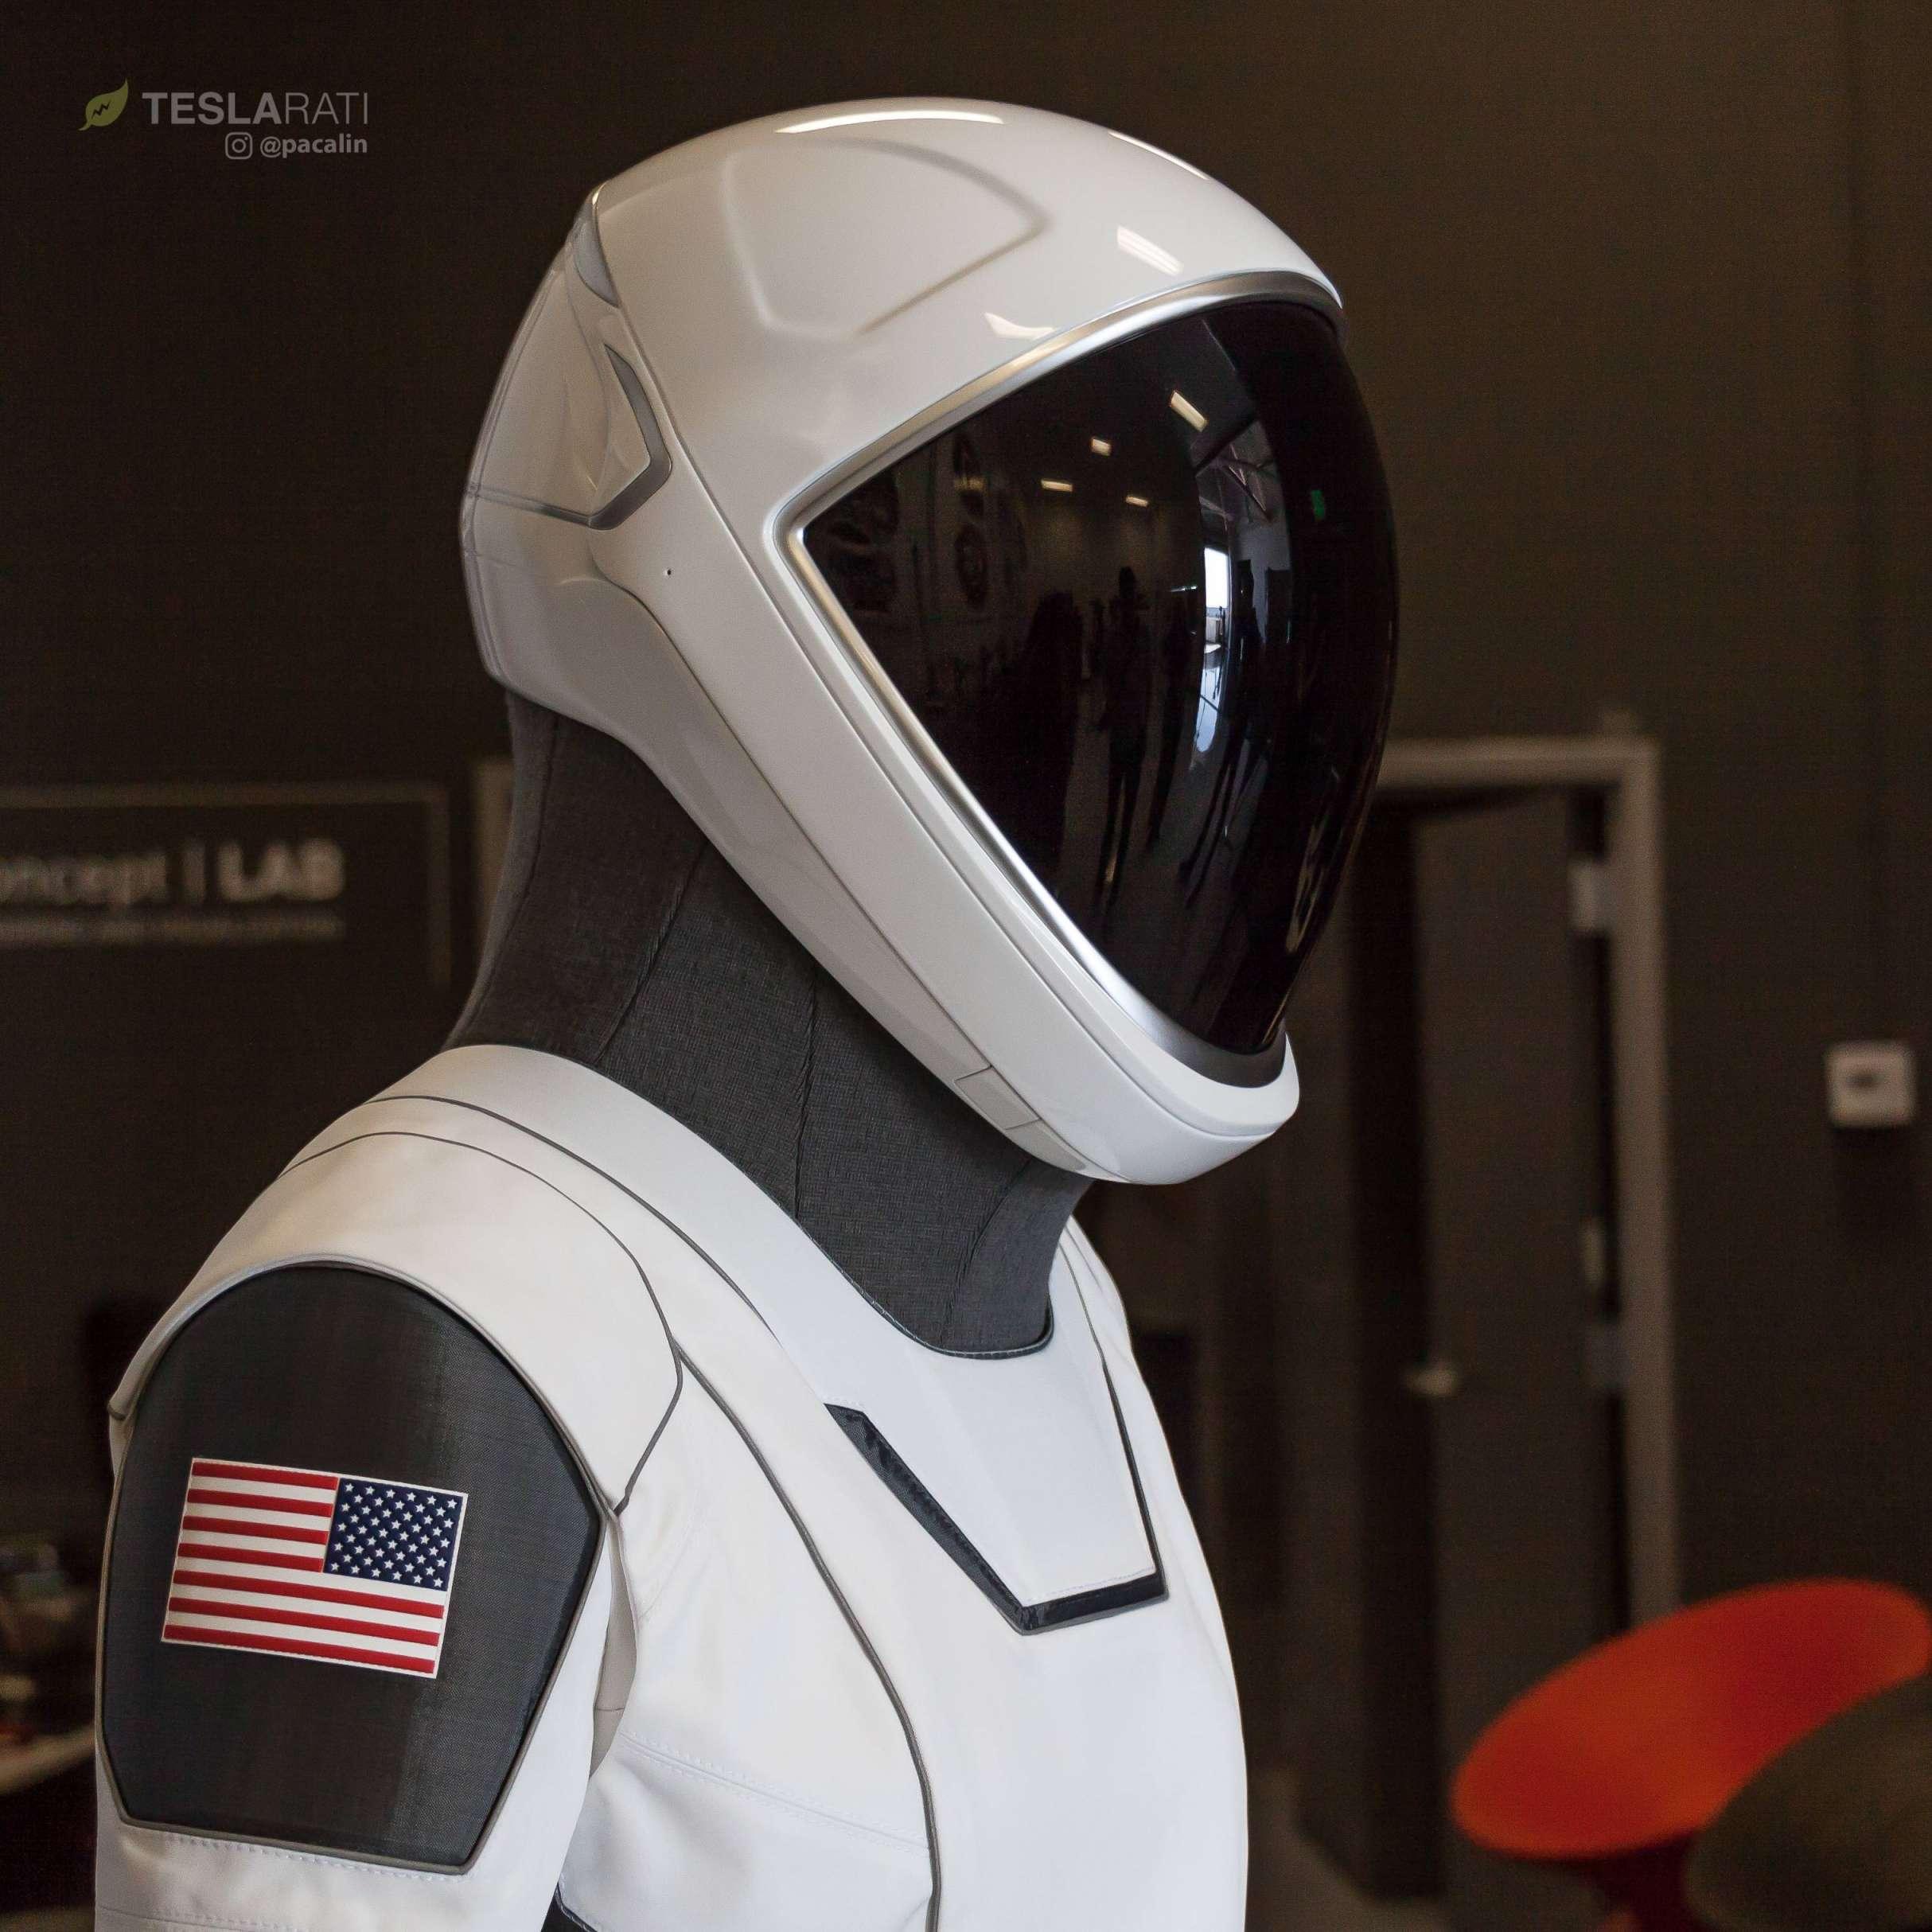 Crew Dragon spacesuit 081318 (SpaceX) 3 (c)